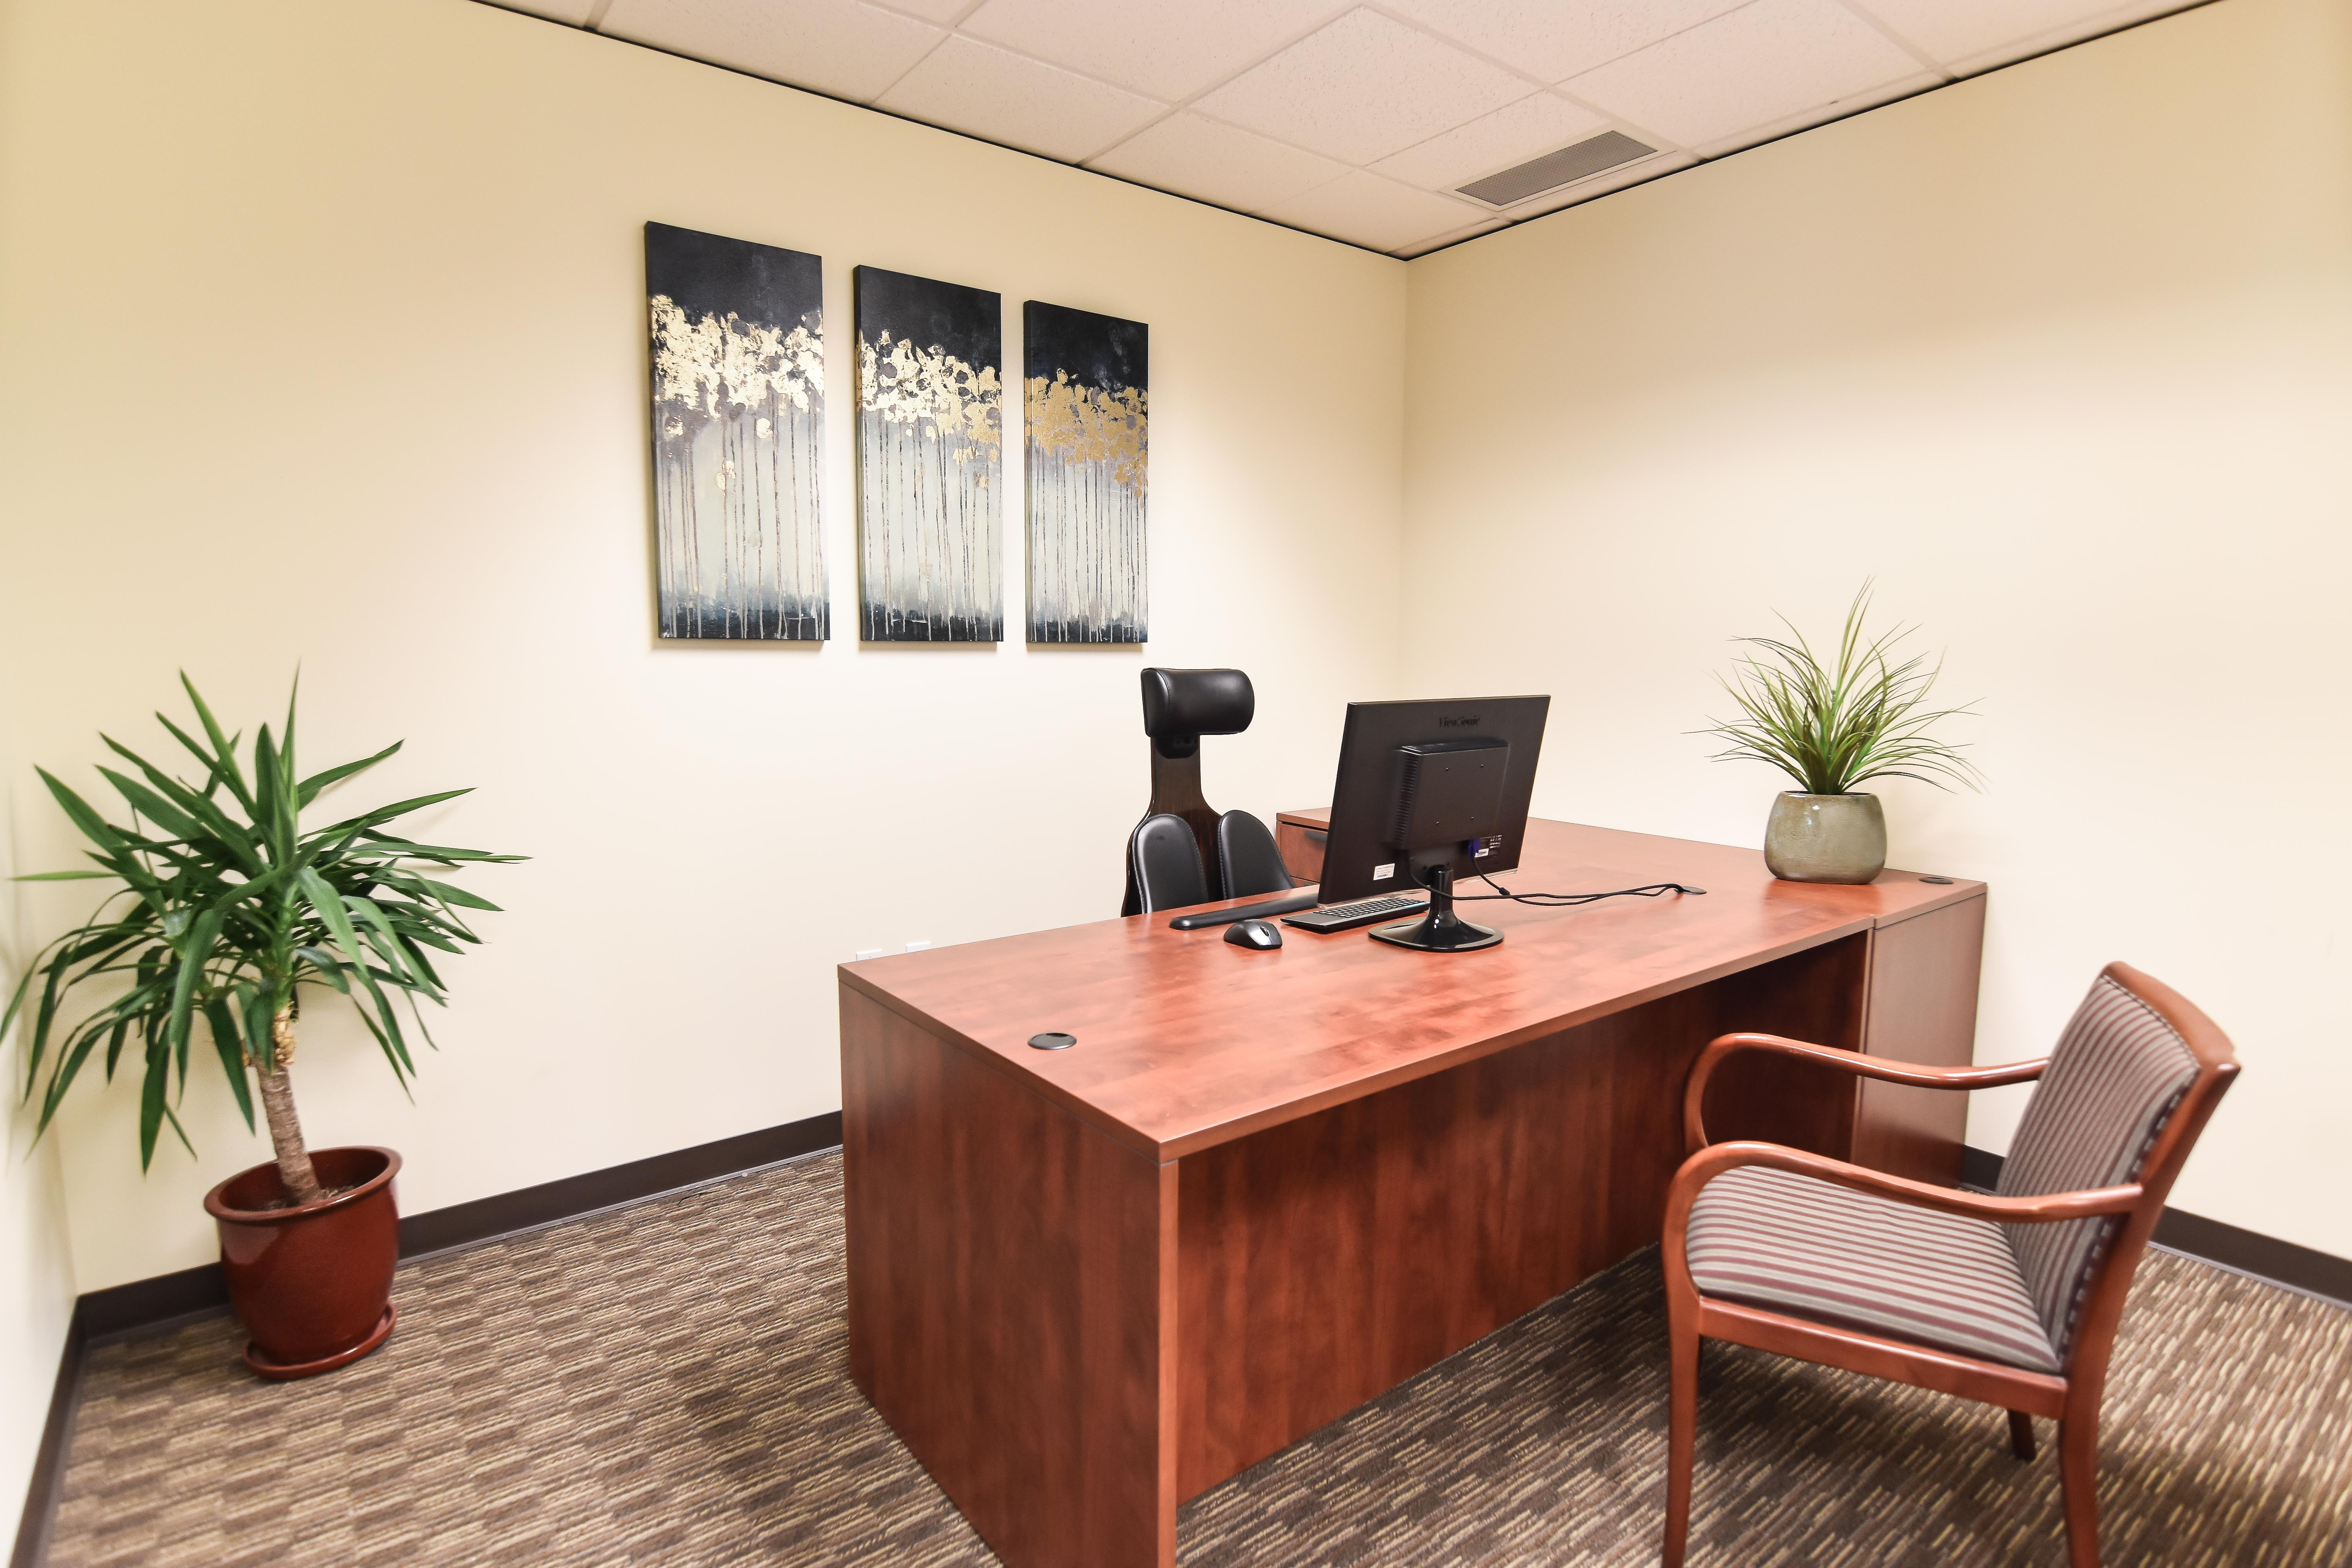 Private Window Office in Mountlake Terrace [101] - Private Office for Lawyers [103]